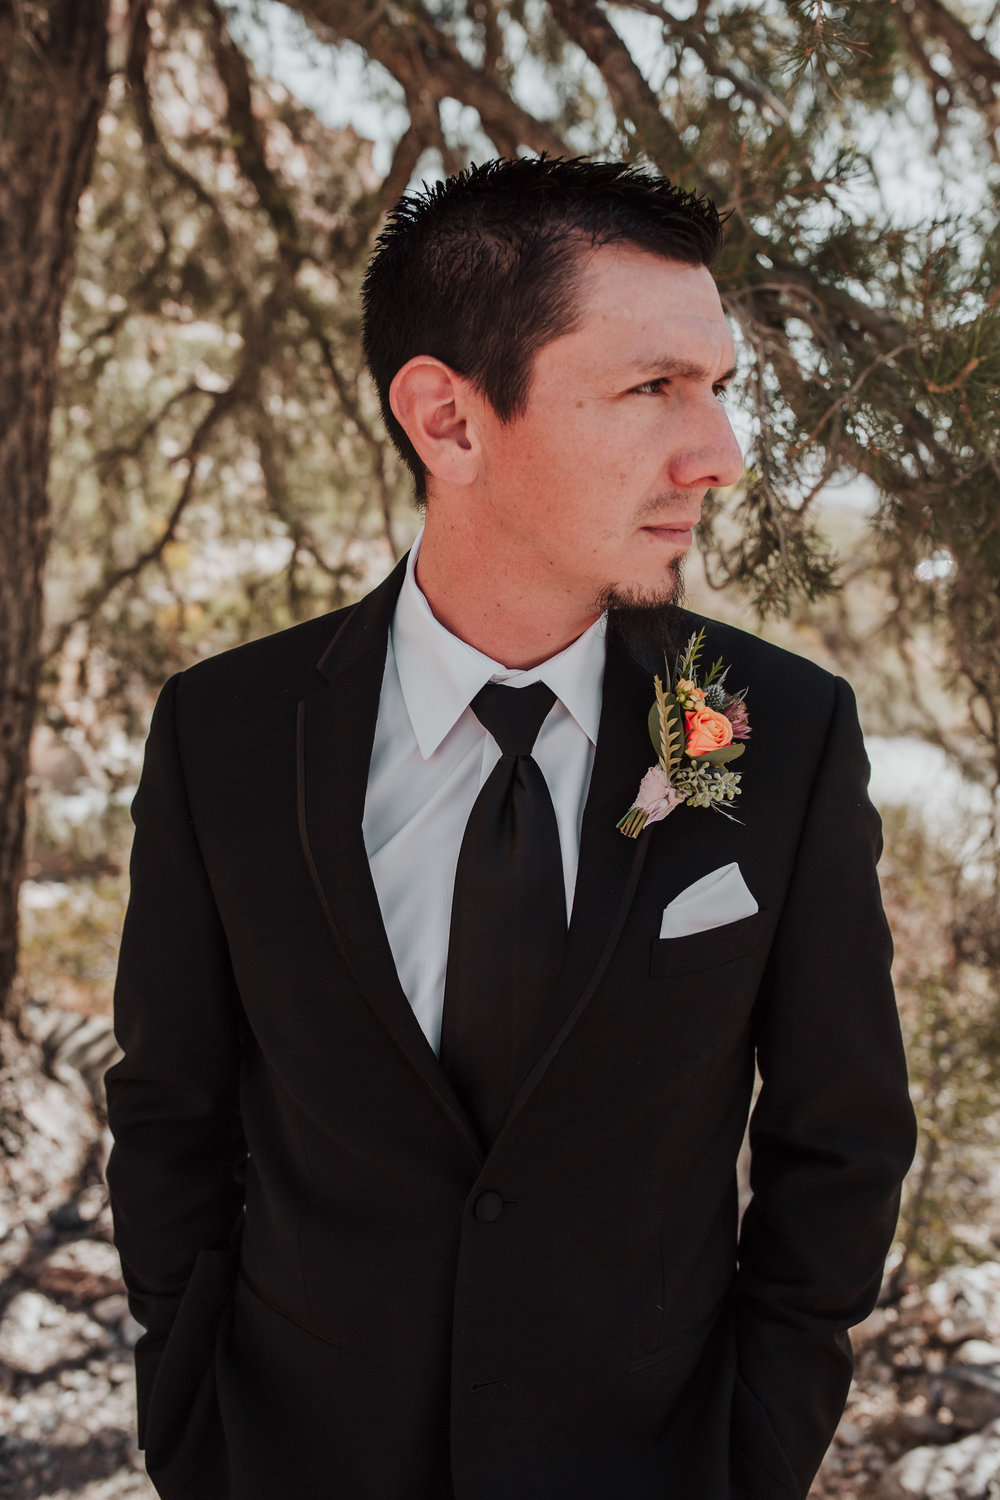 Rustic Bloom Photography | Groom Style Inspiration